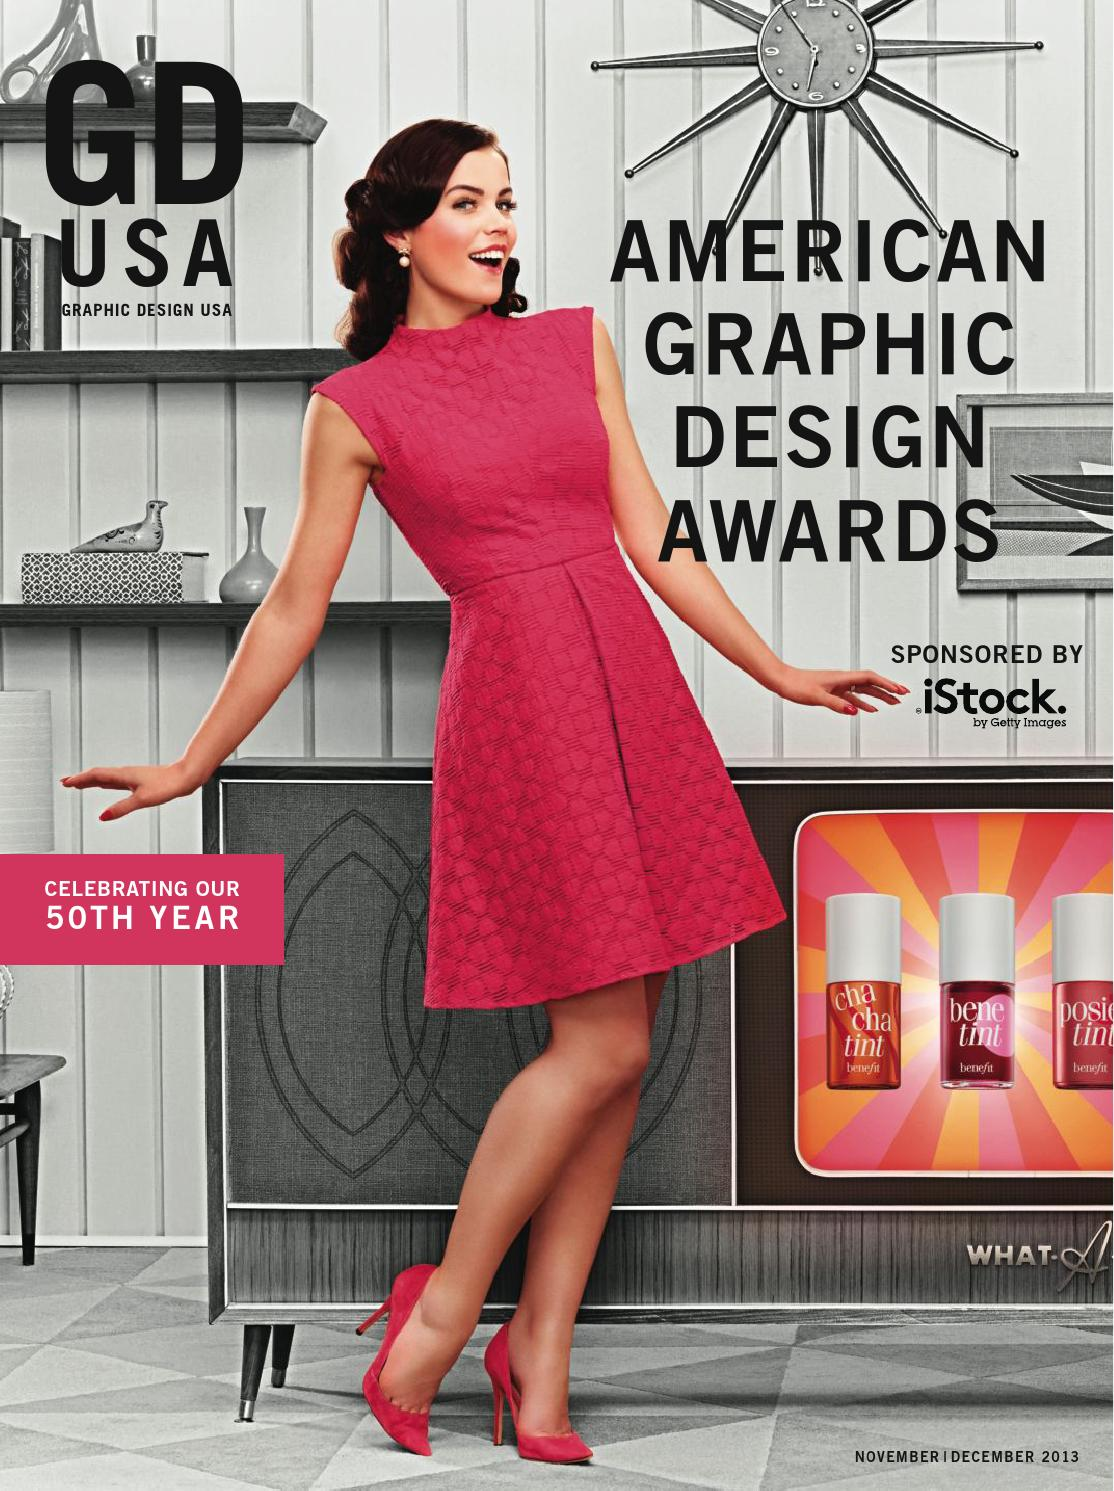 Gd Usa Award 2016 In House Design: GDUSA November/December 2013 Issue By Graphic Design USA